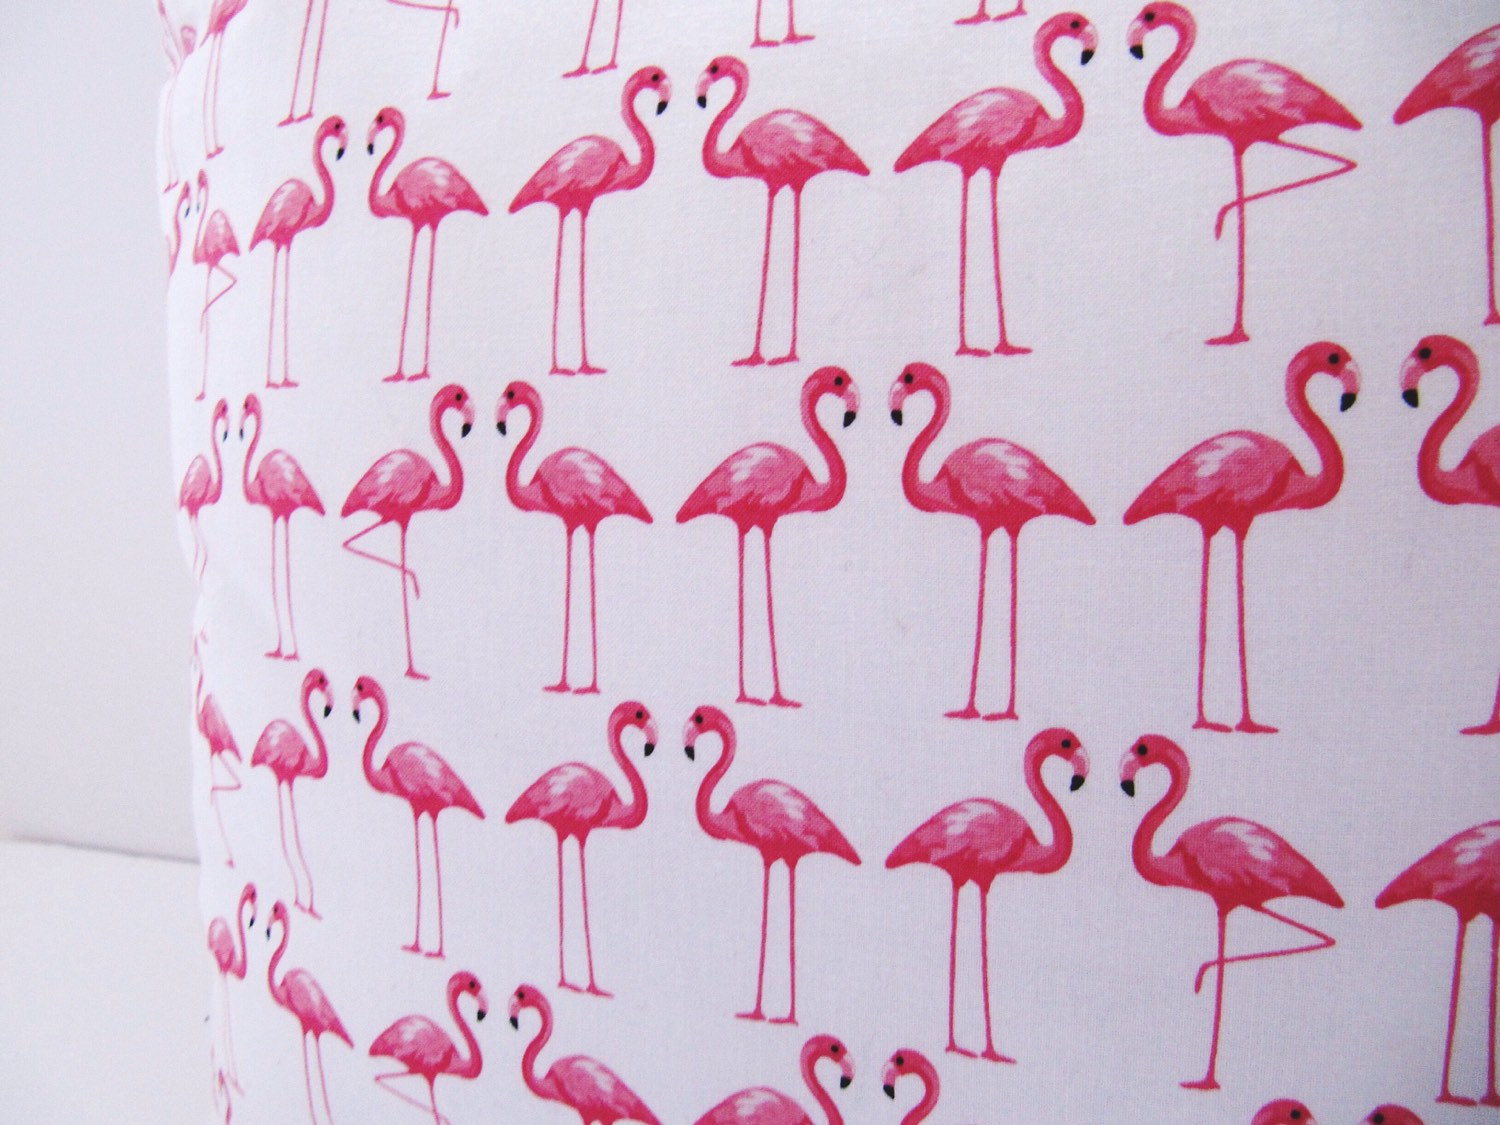 the rise of pink flamingo d 233 cor selected items available pink flamingo decor only 58 99 at garden fun